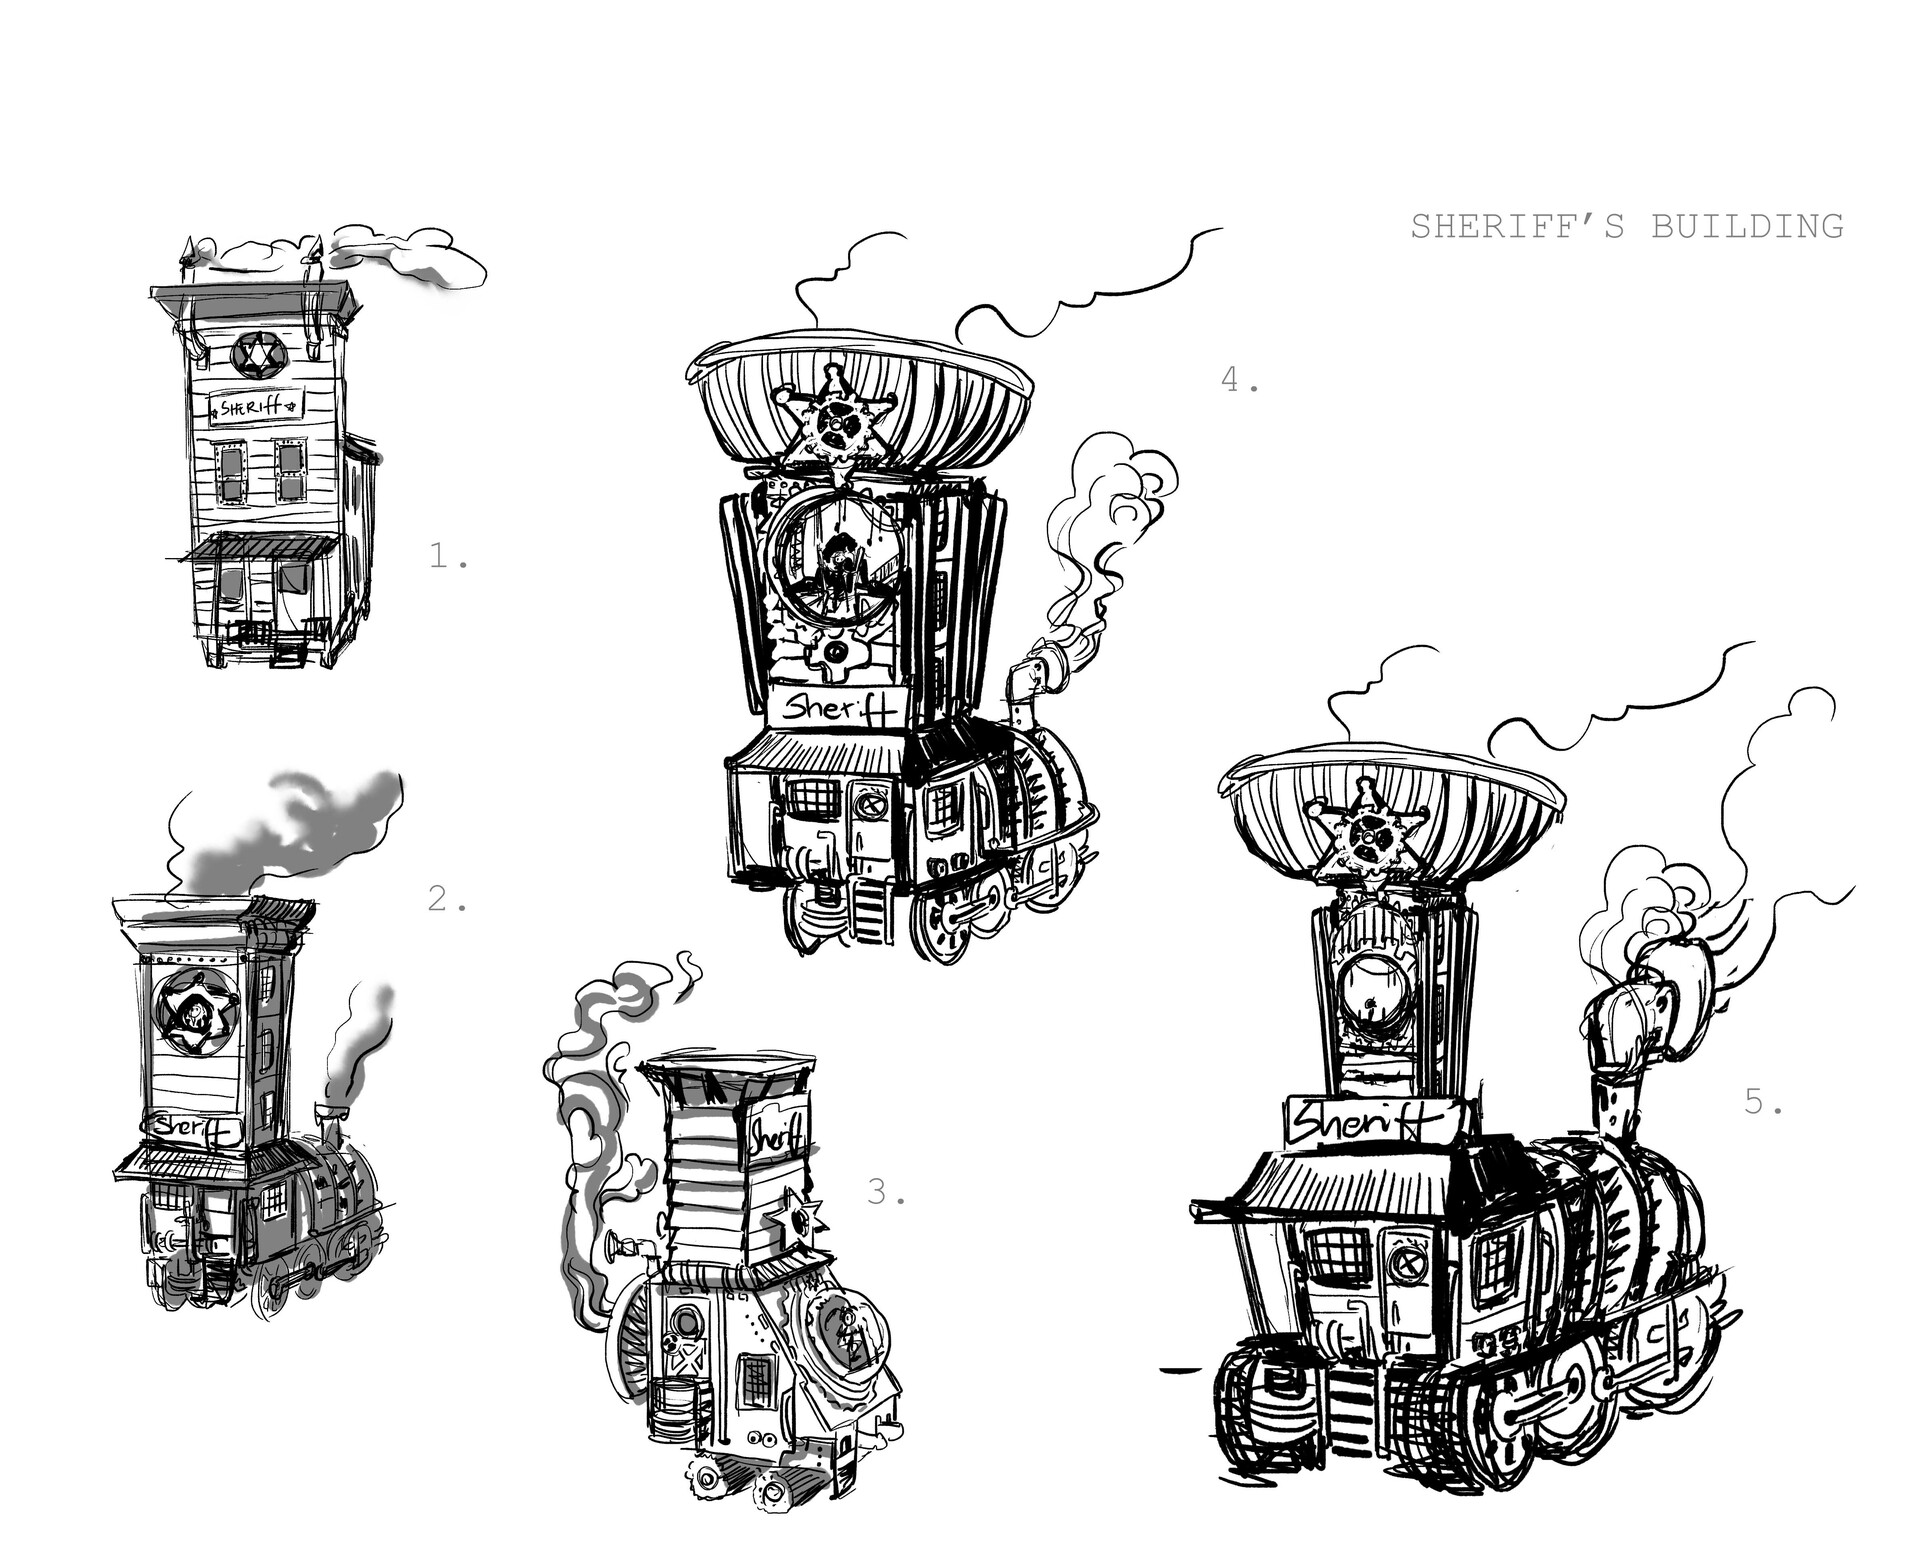 My favourites among the initial sketches